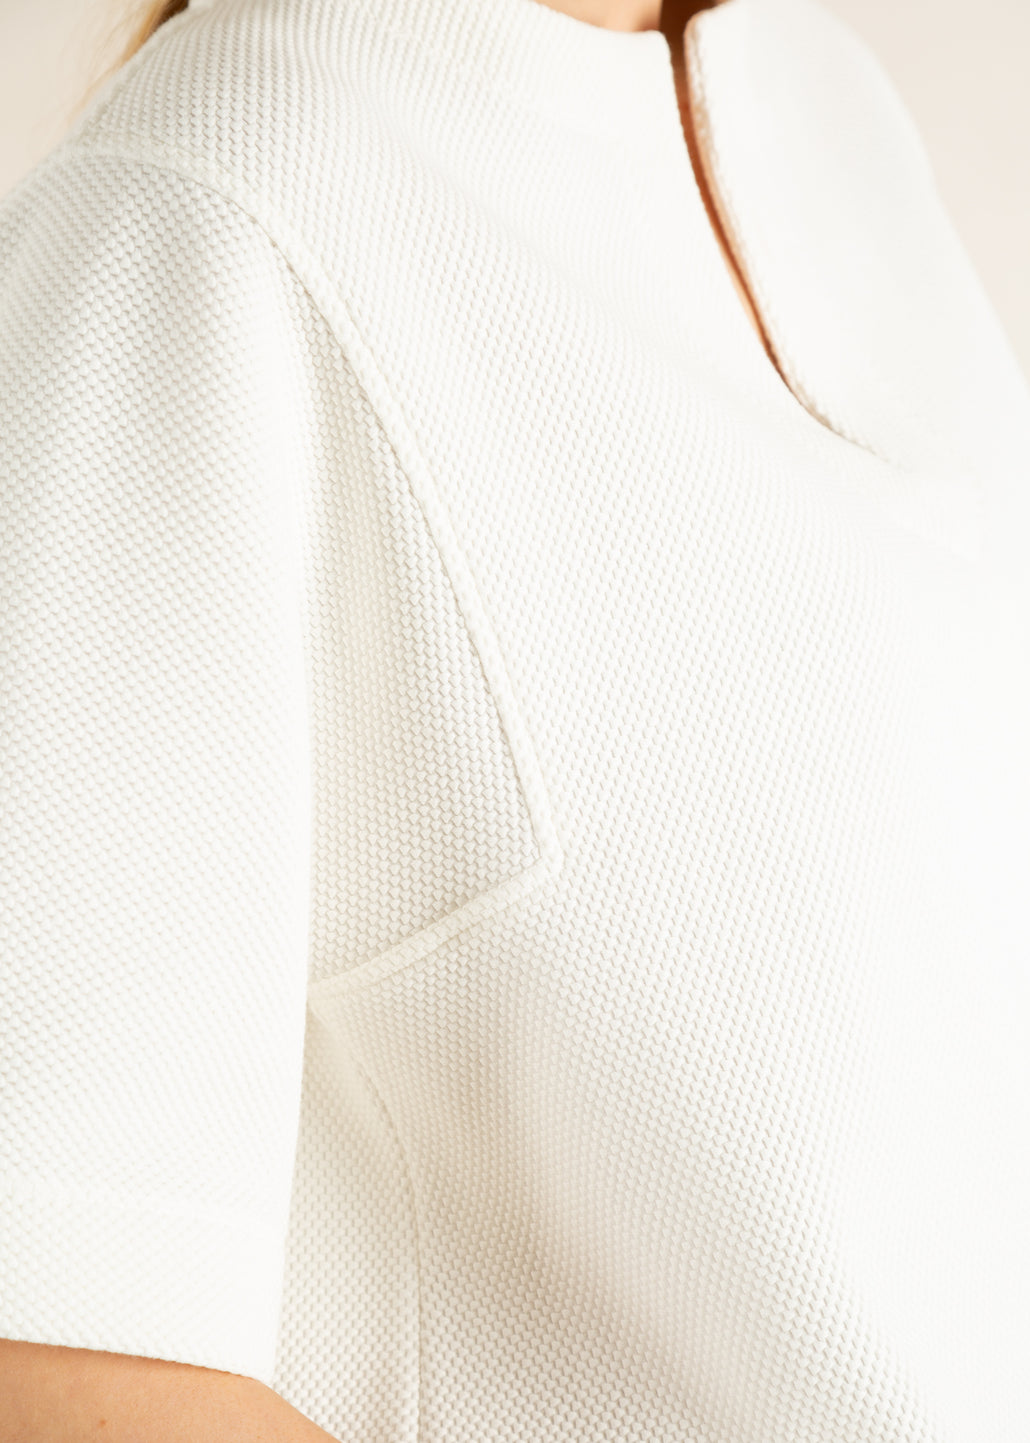 detail witte struc sweater